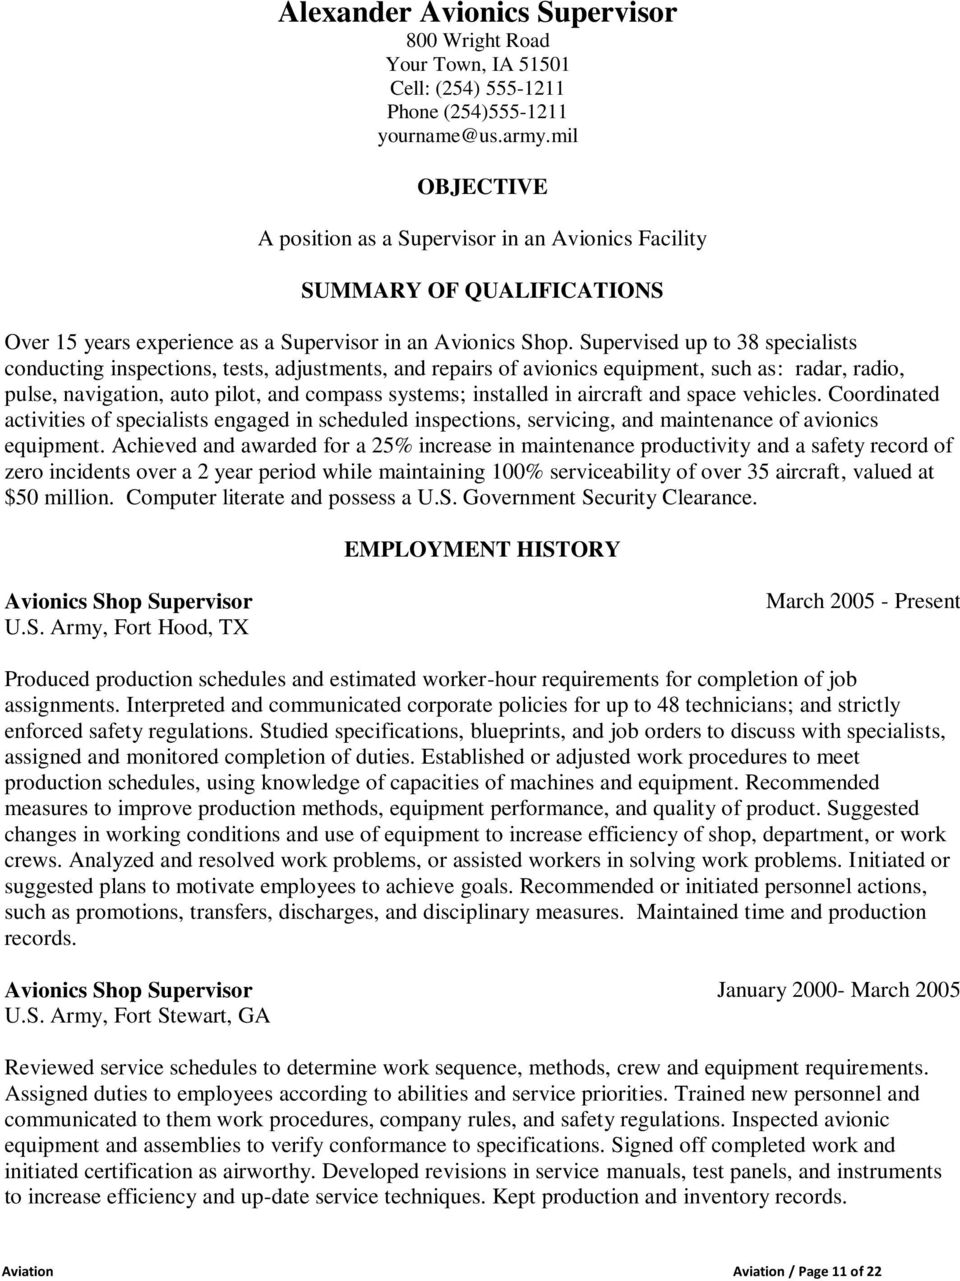 sample resumes for aviation pdf